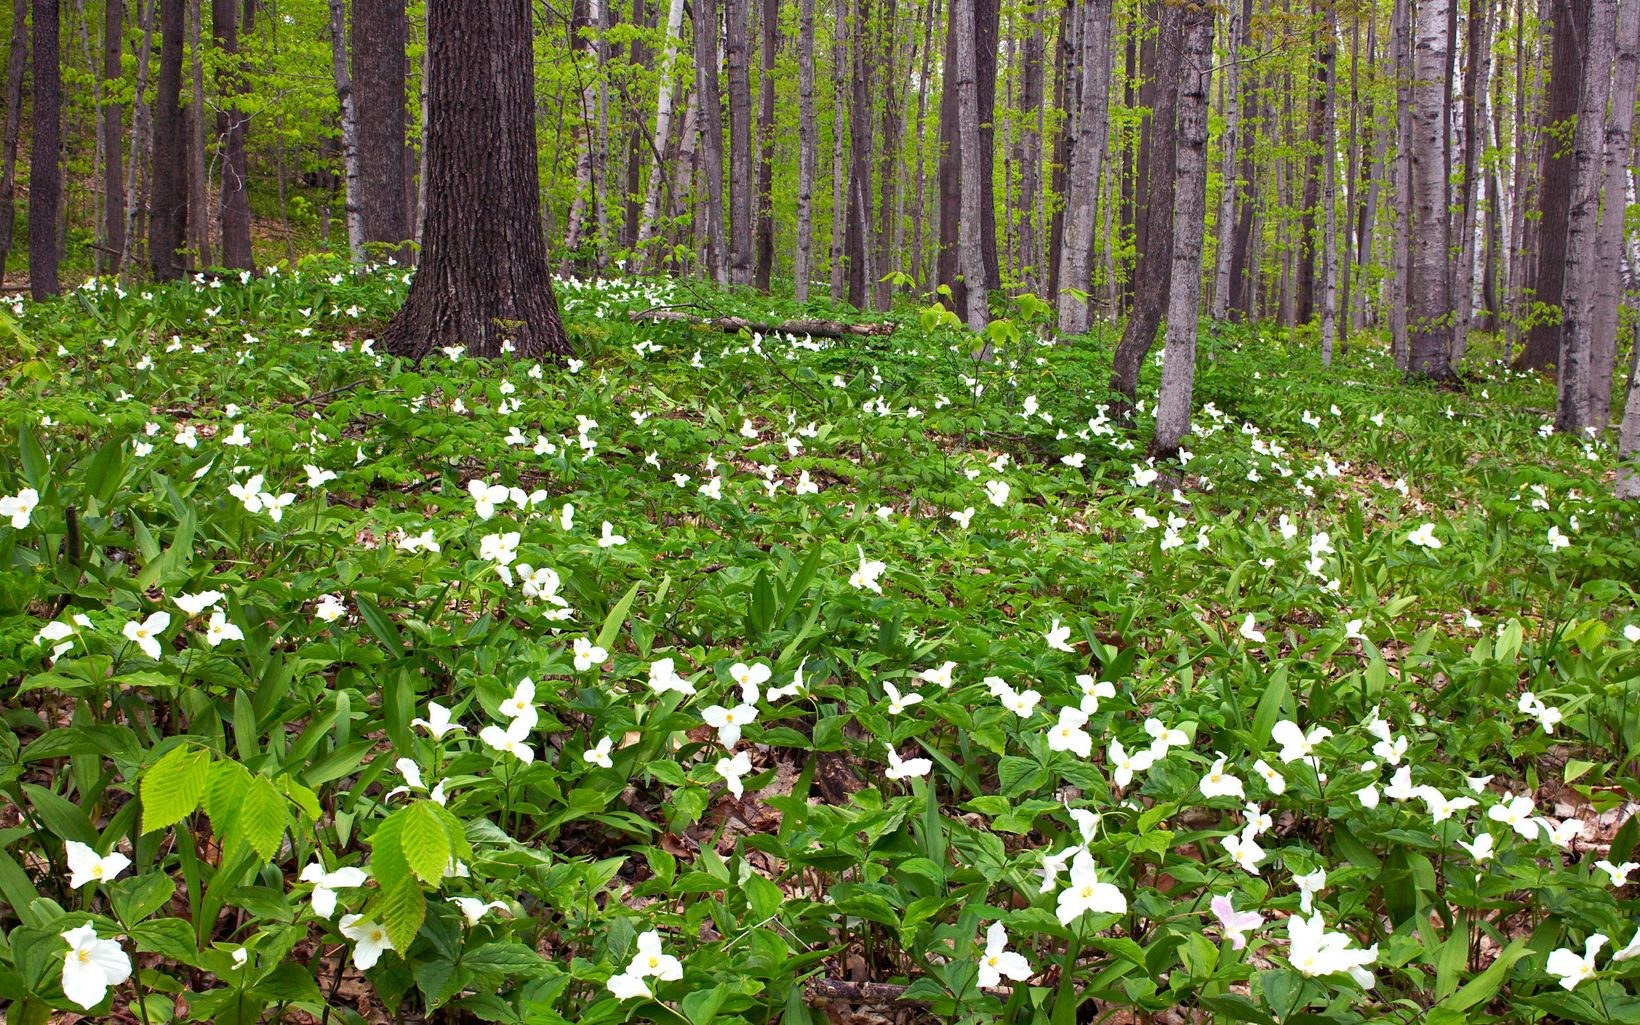 A forest floor blanketed with green plants with three-petaled white trillium flowers.